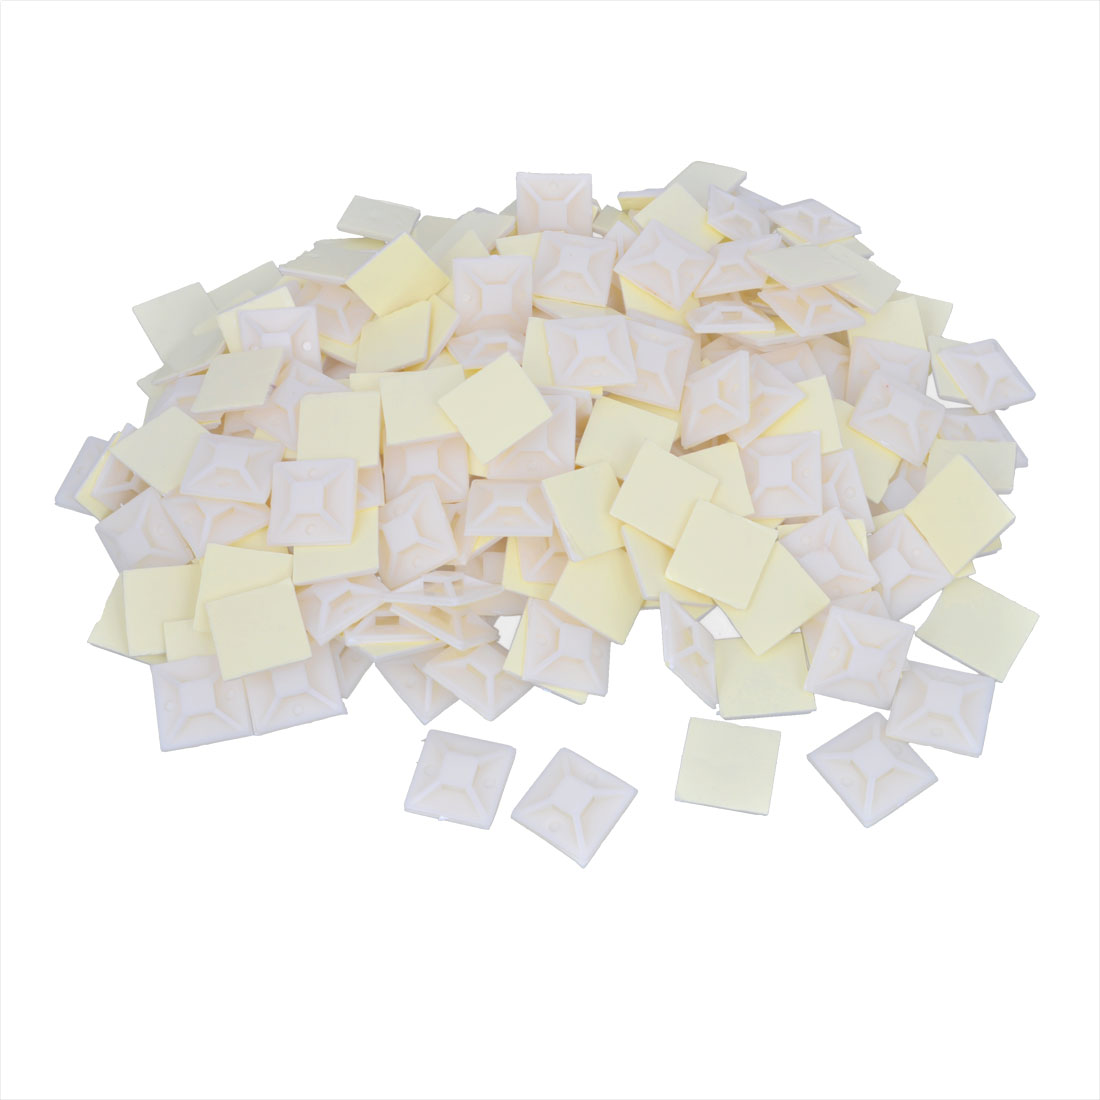 1000 Pcs Plastic Self Adhesive Cable Tie Mount Base 20mm x 20mm